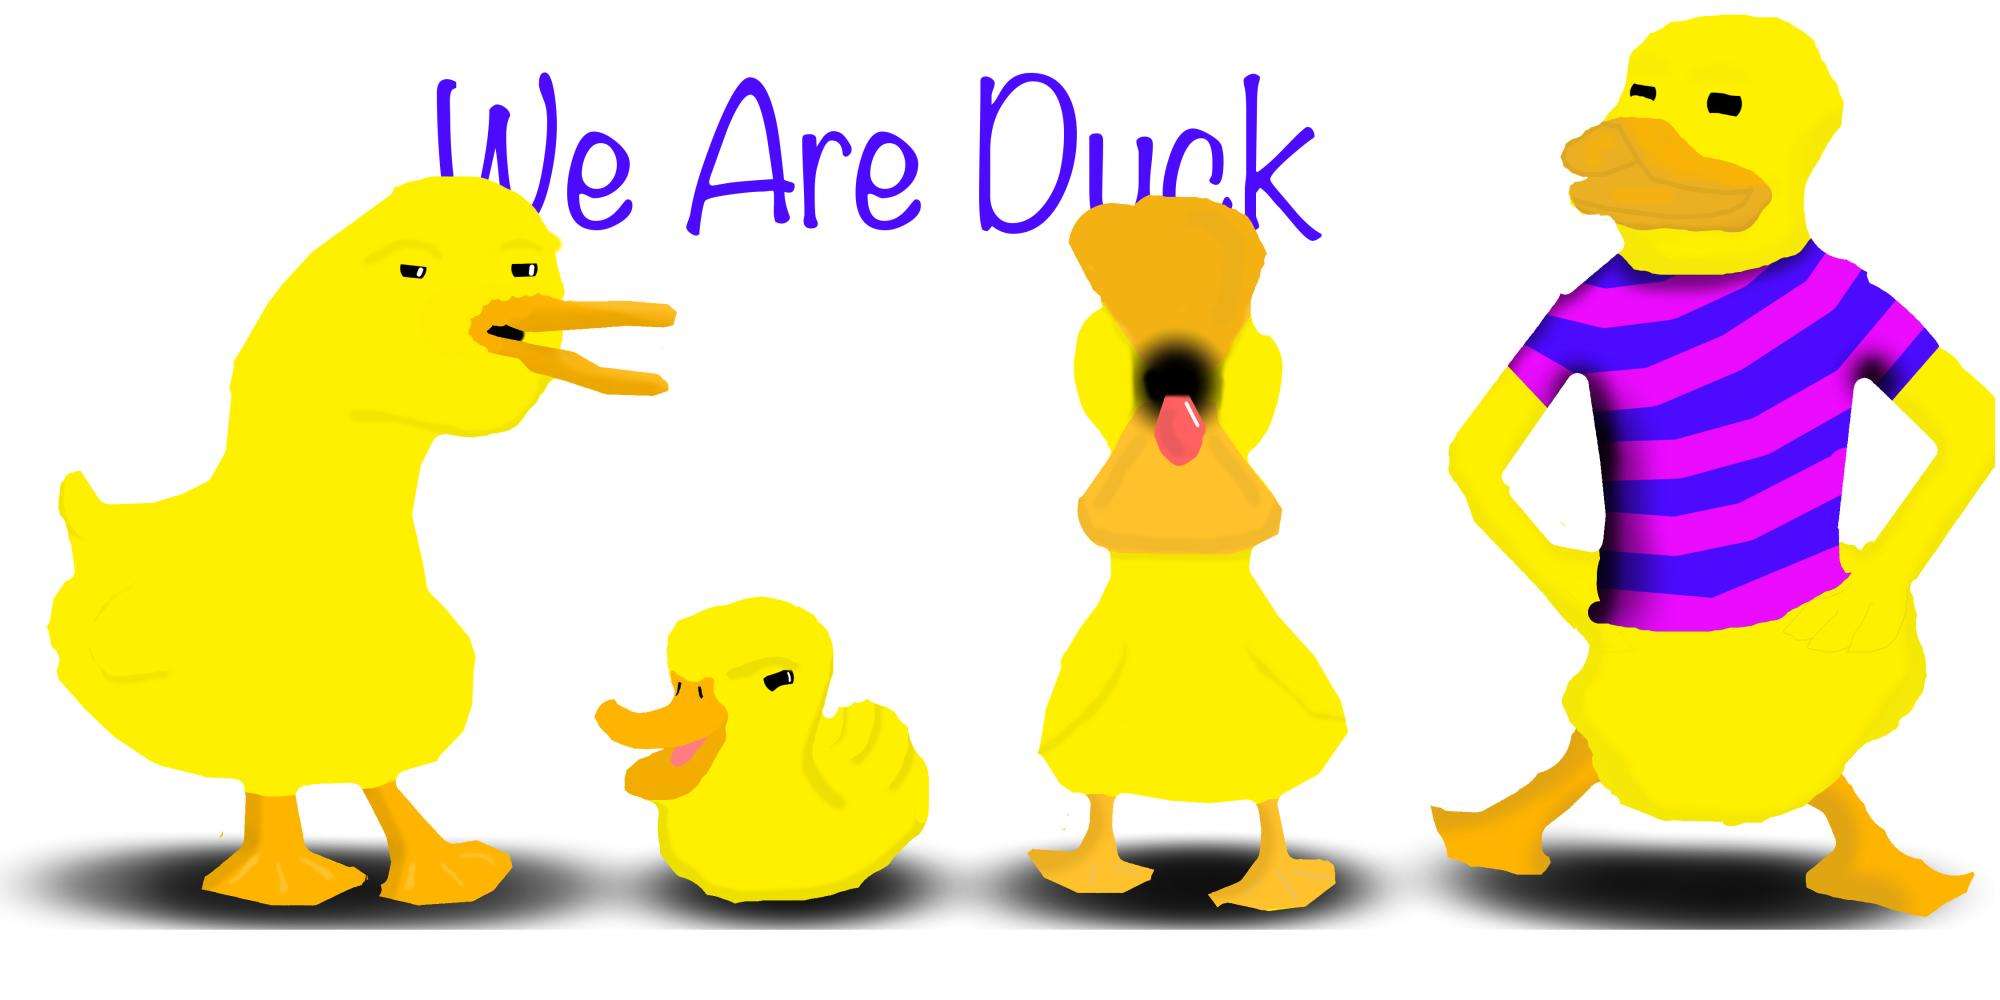 We Are Duck